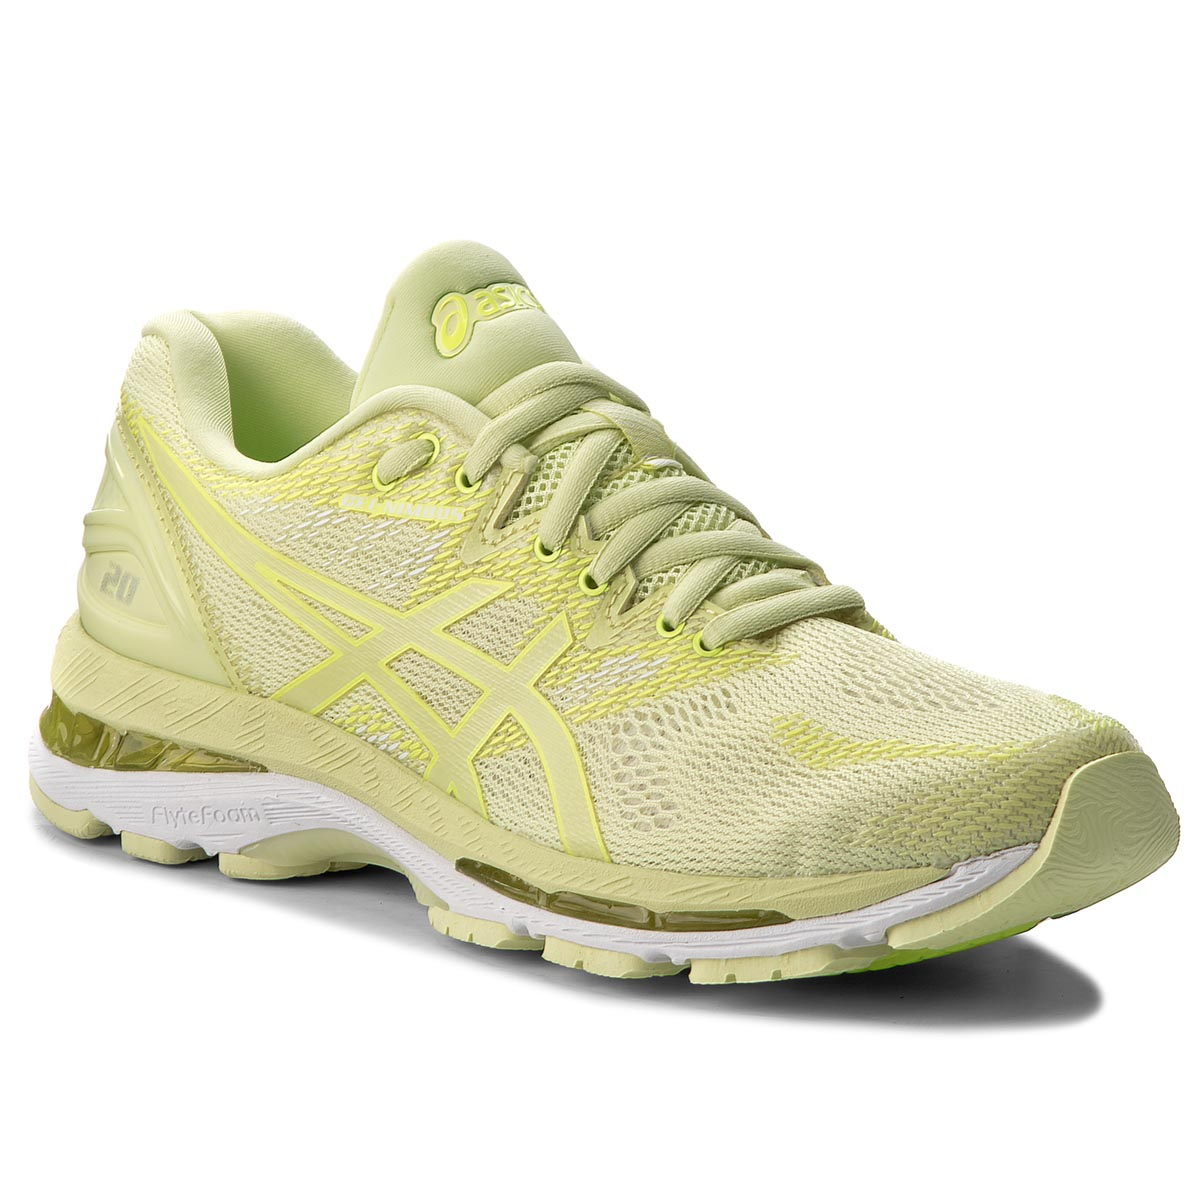 Buty ASICS - Gel-Nimbus 20 T850N Limelight/Limelight/Safety Yellow 8585